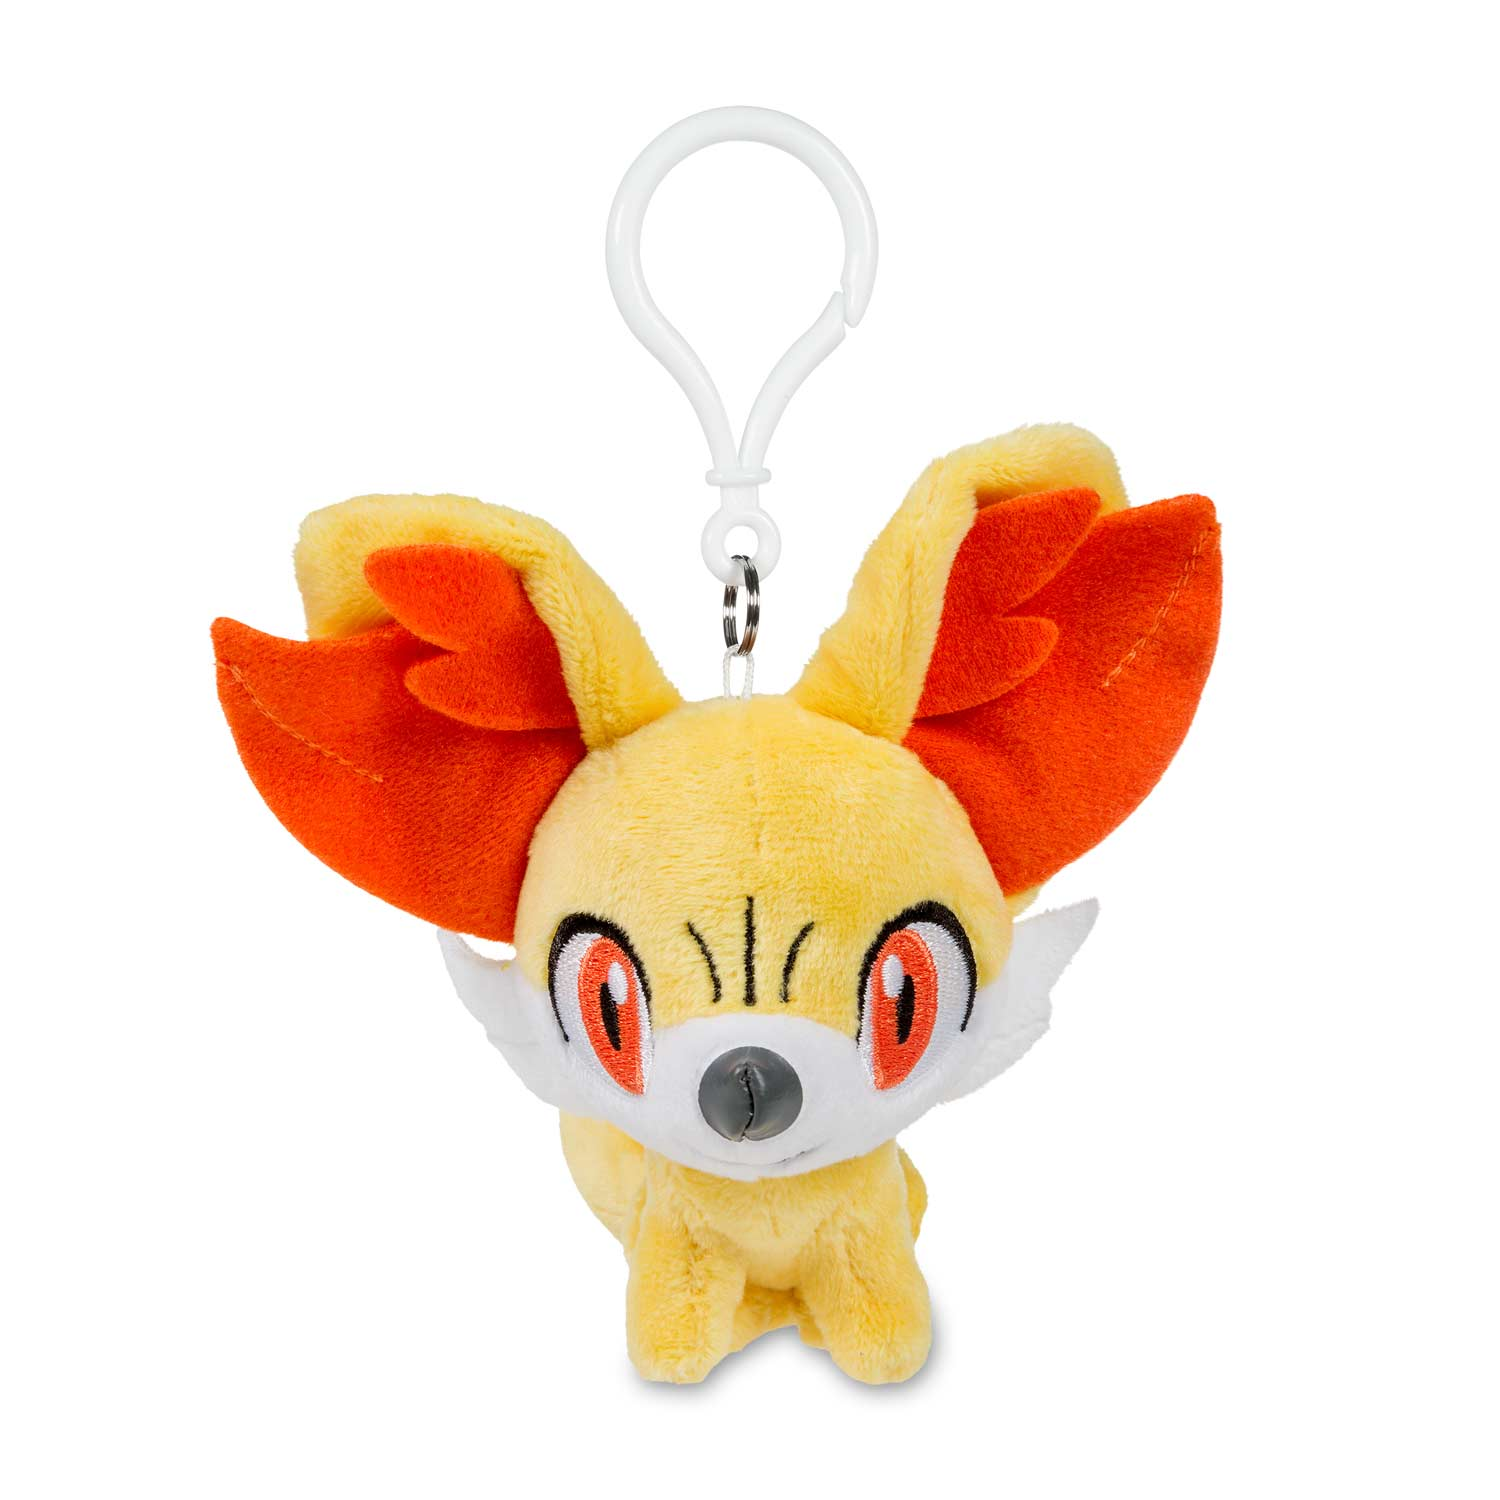 image for fennekin pokmon petit plush keychain from pokemon center _5_3074457345618259663_3074457345618262055_3074457345618268804